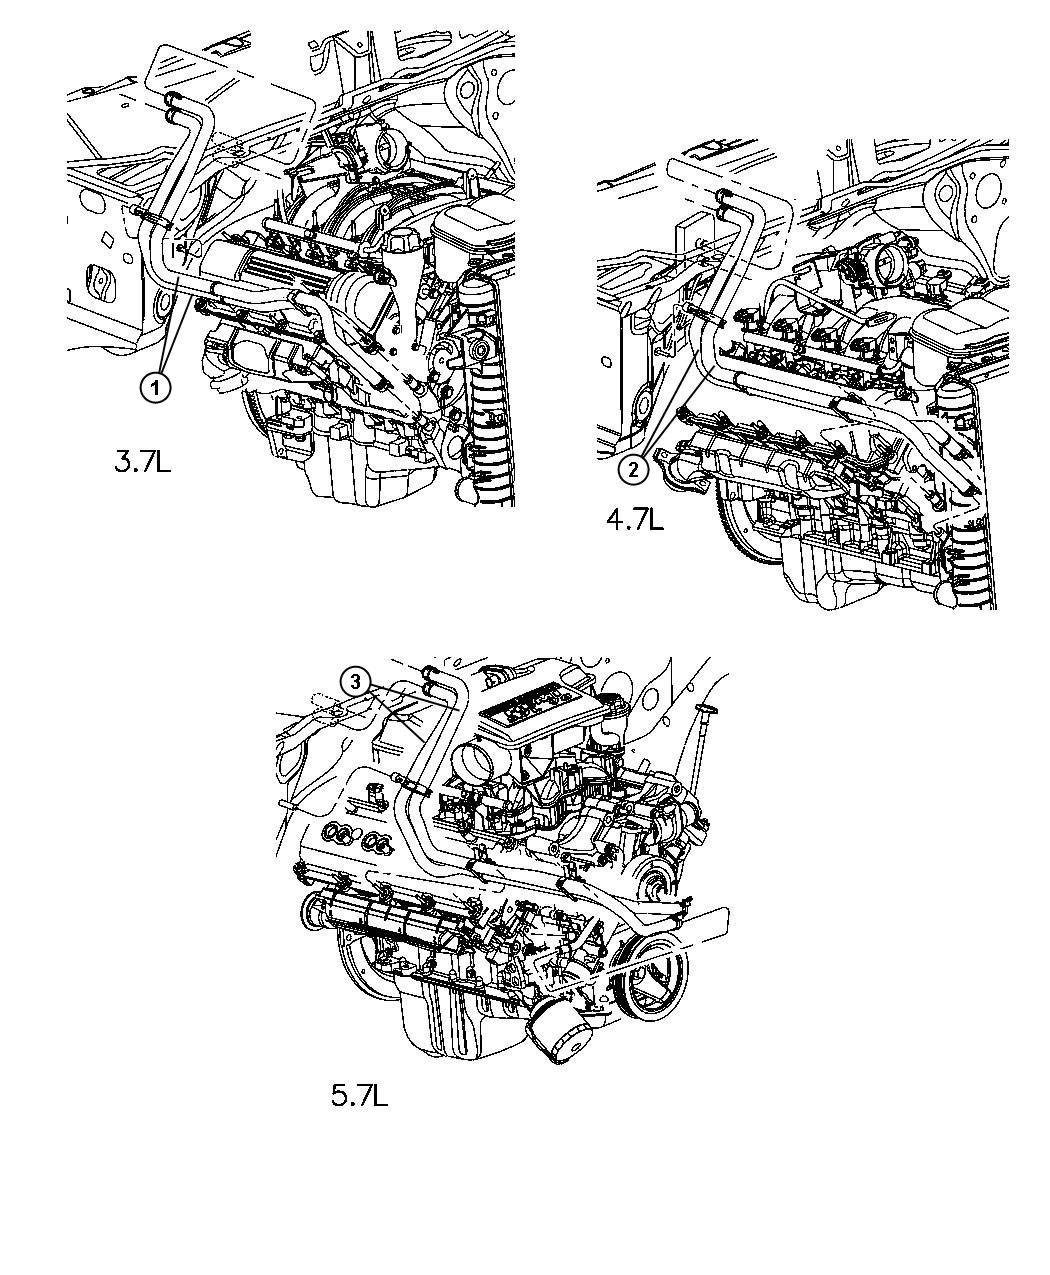 Dodge Ram 4 7 Heater Hose Diagram